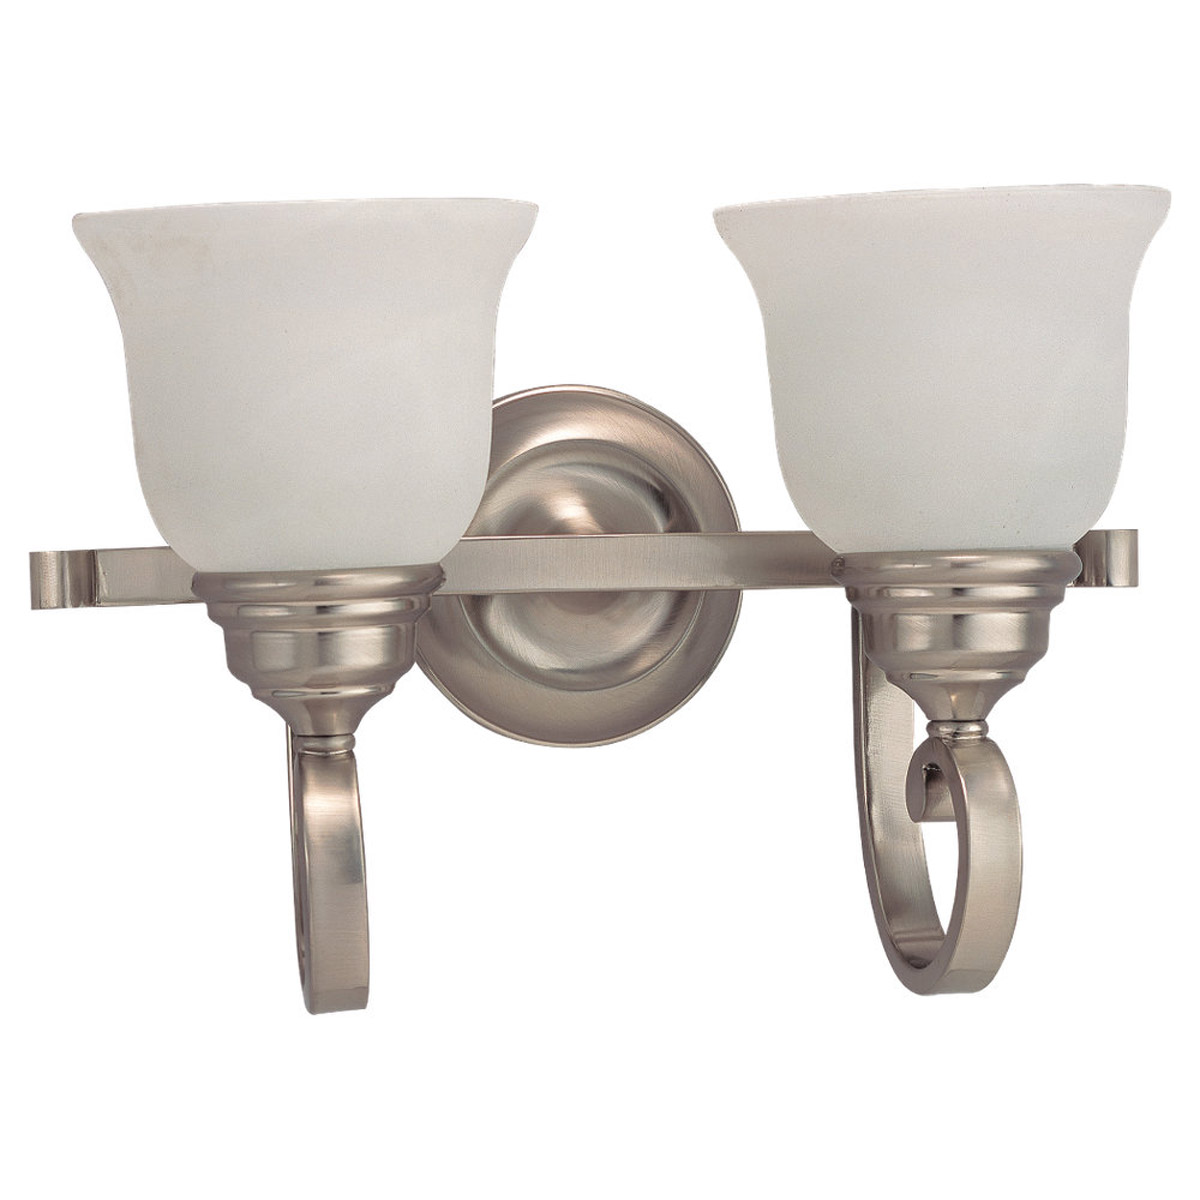 Sea Gull Lighting Serenity 2 Light Bath Vanity in Brushed Nickel 44190-962